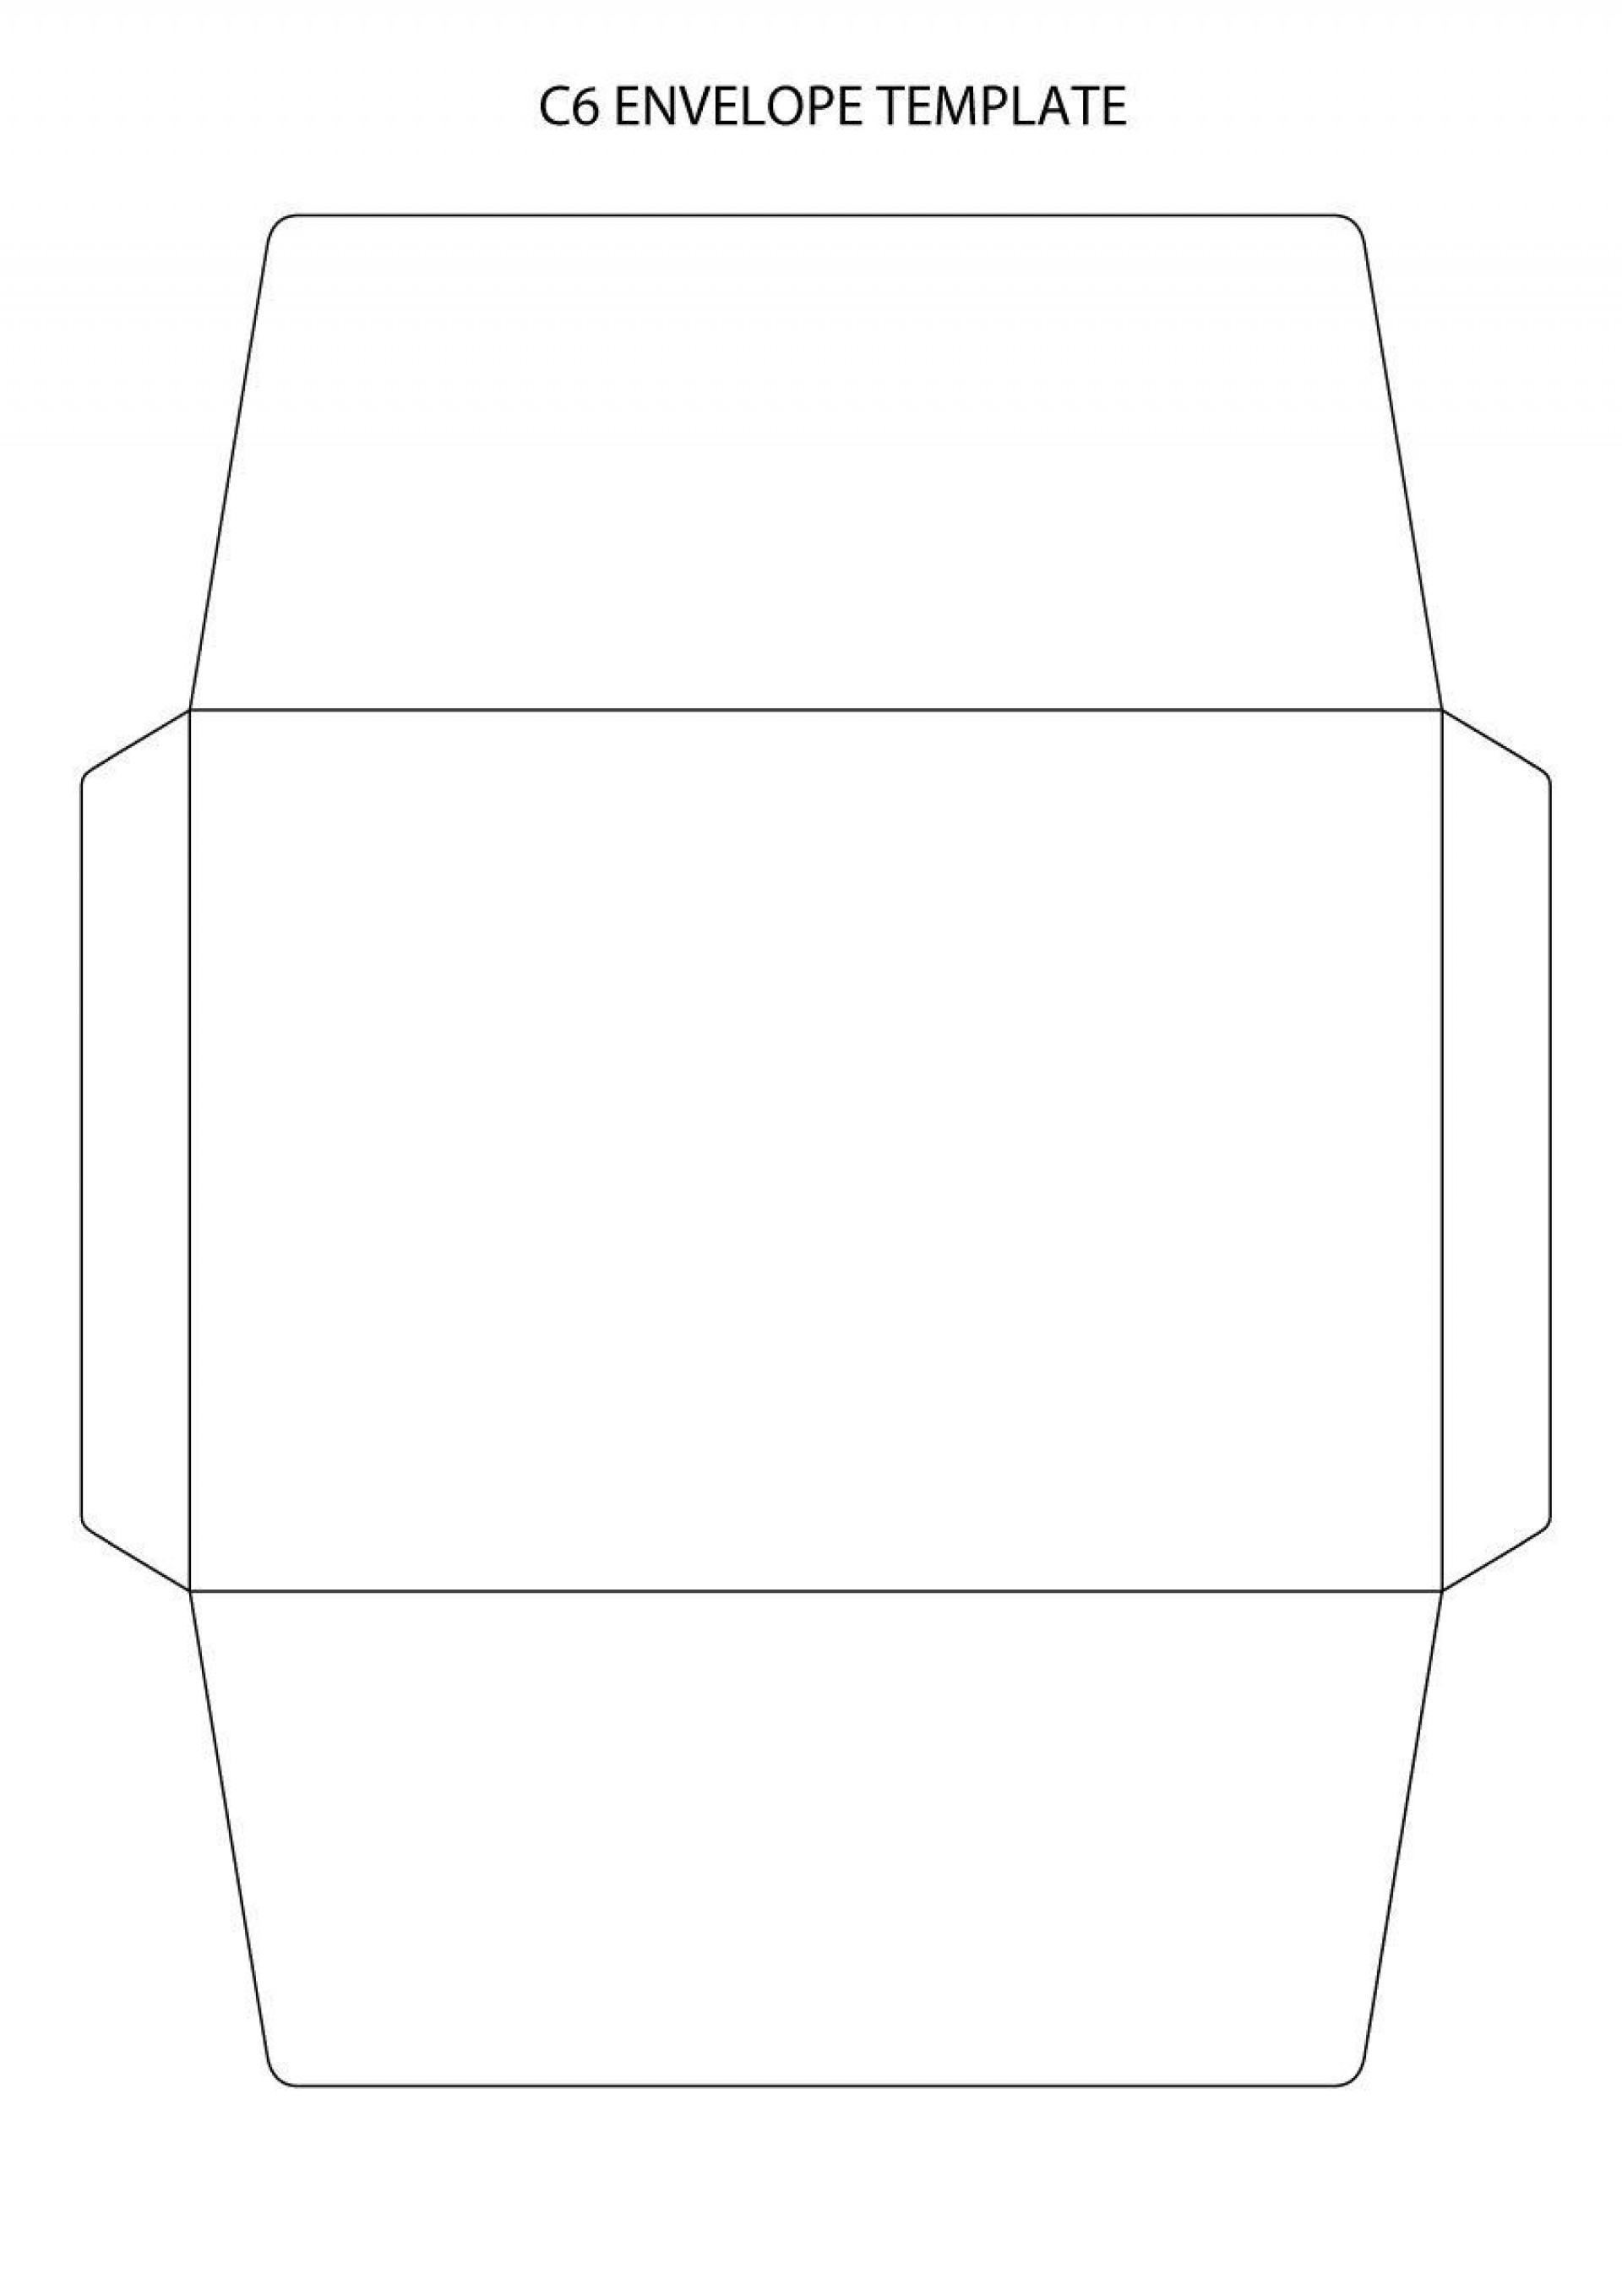 002 Awesome 5x7 Envelope Template Word High Def  Microsoft Free1920